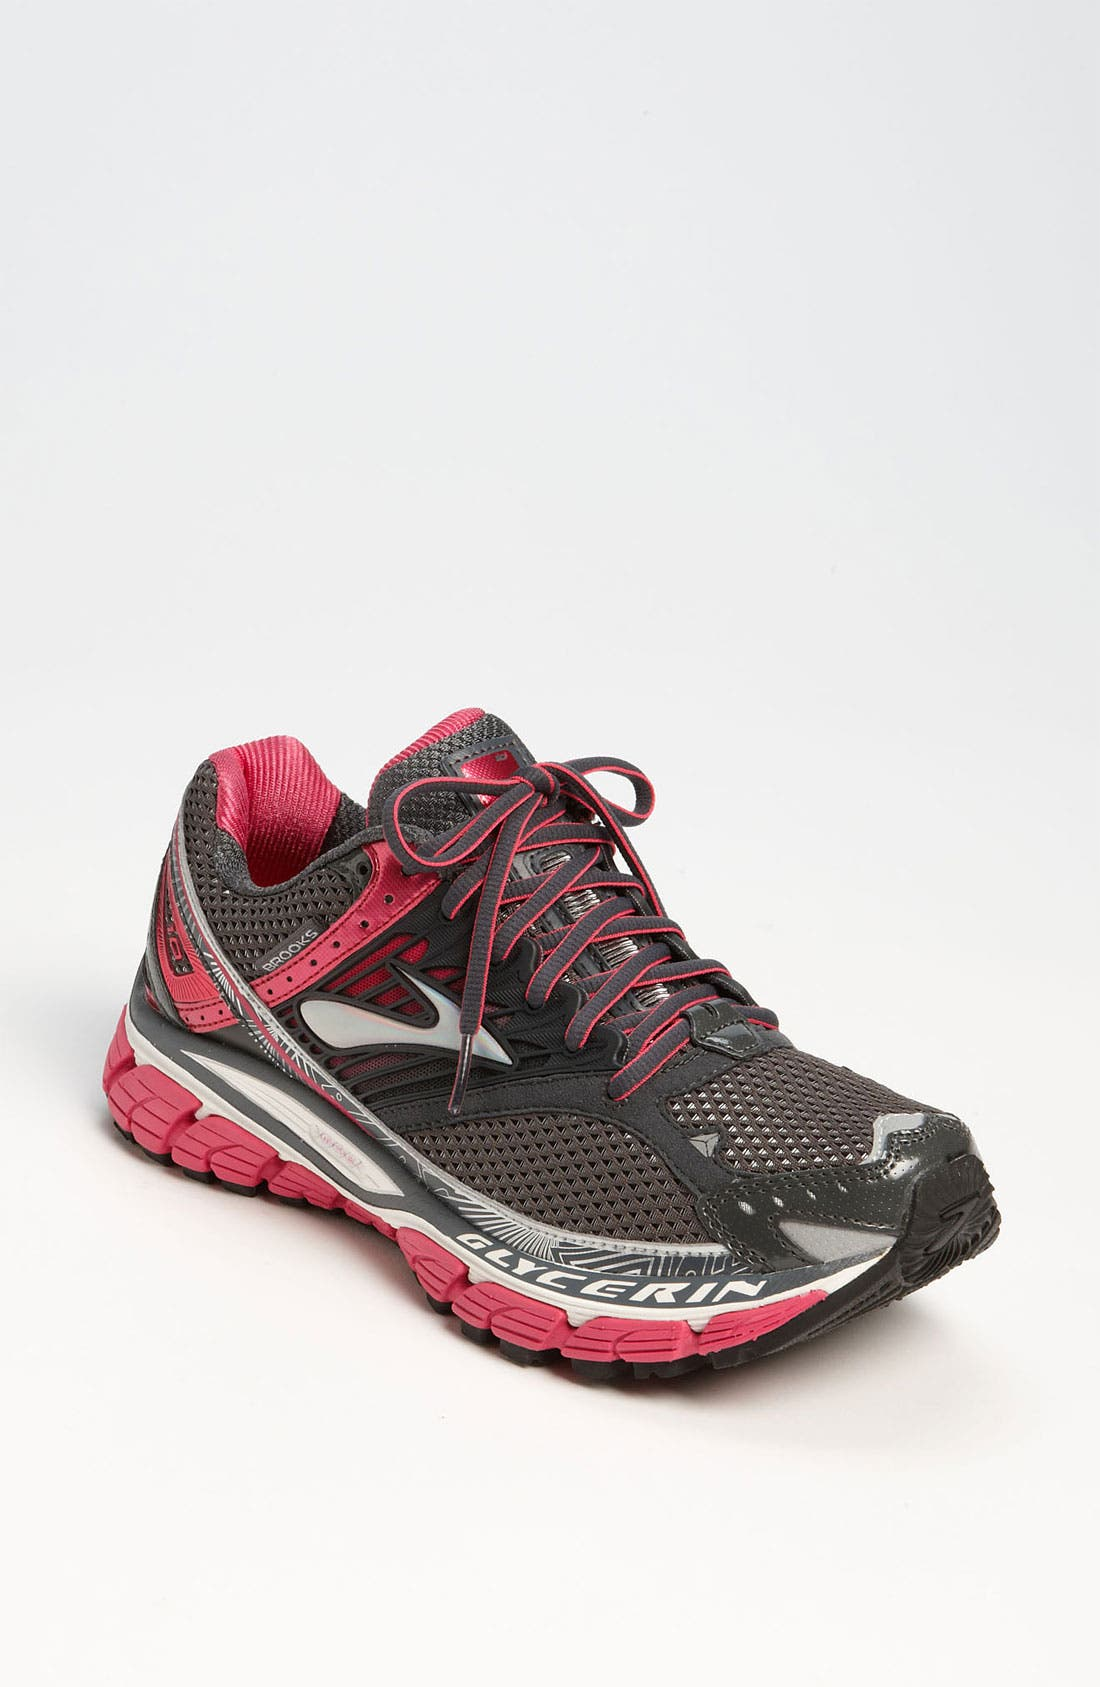 Alternate Image 1 Selected - Brooks 'Glycerin 10' Running Shoe (Women) (Regular Retail Price: $139.95)